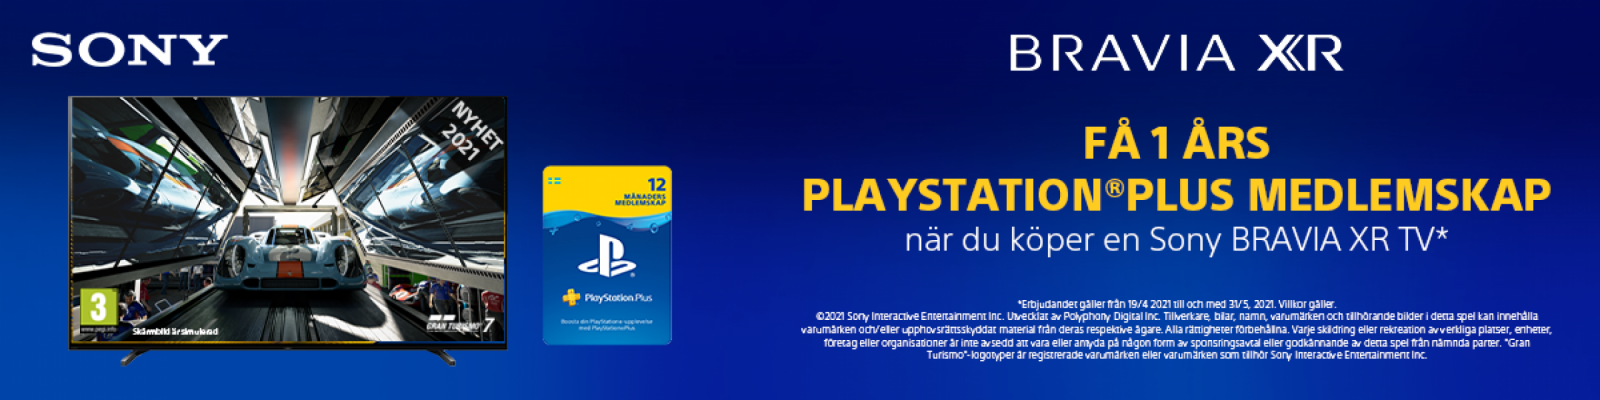 banner_sony_xr_83a90j.png